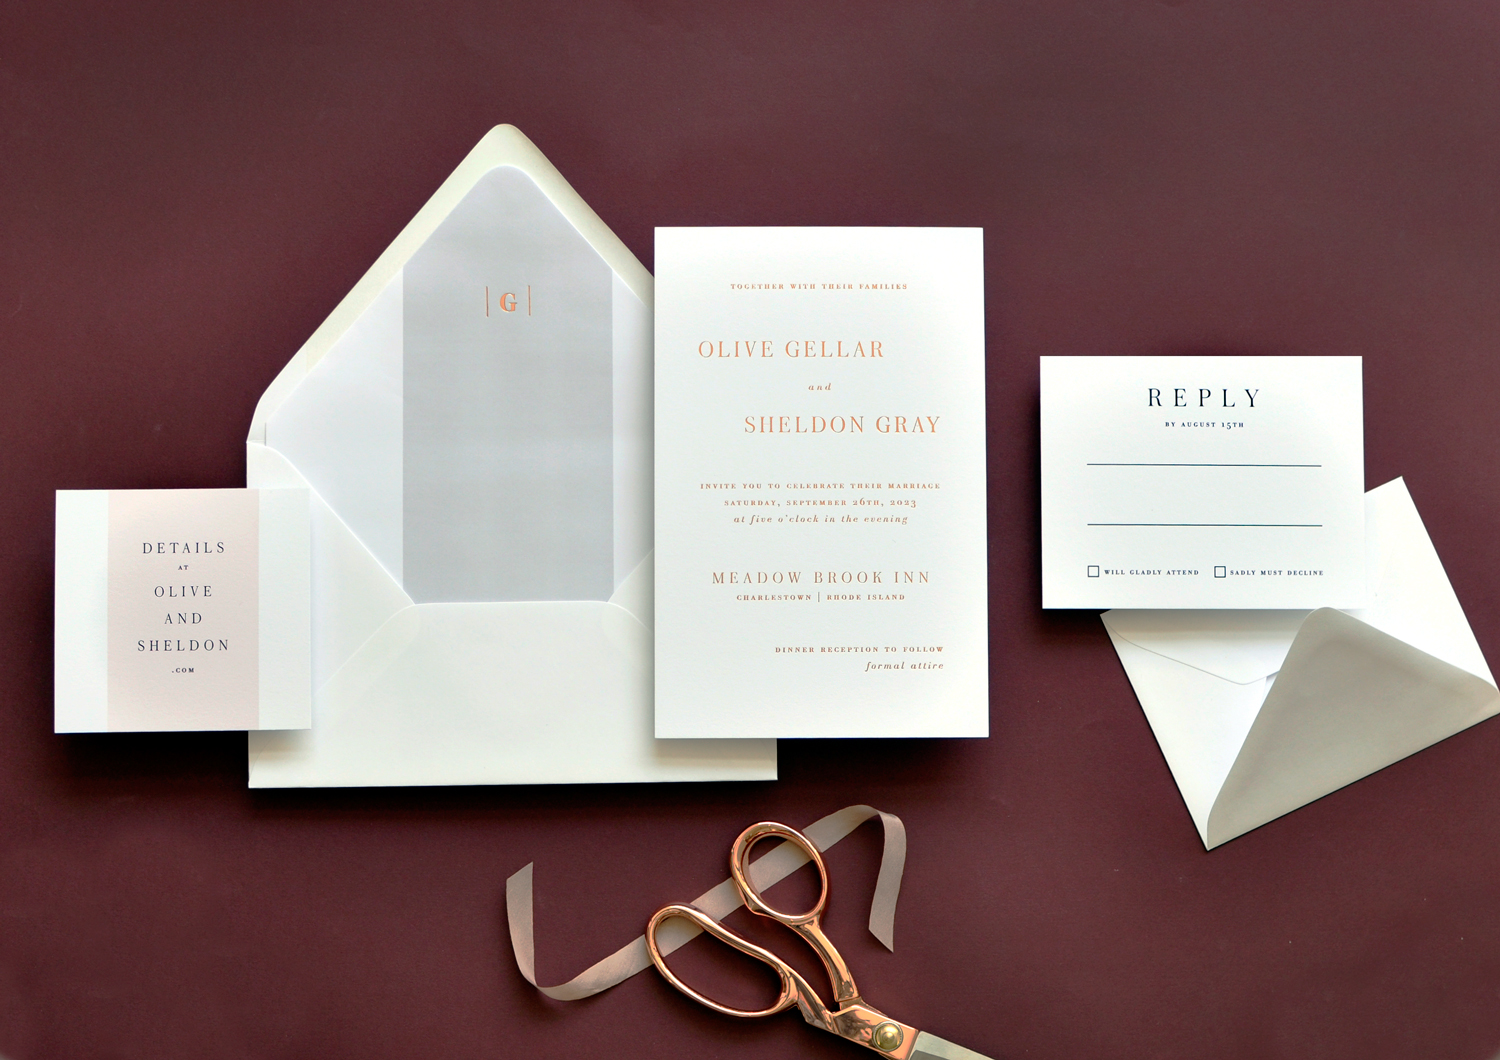 Rose gold foil contemporary wedding invitation is clean and crisp. Staccato serves engaged couples from Virginia, Maryland, Washington DC, and nationwide.